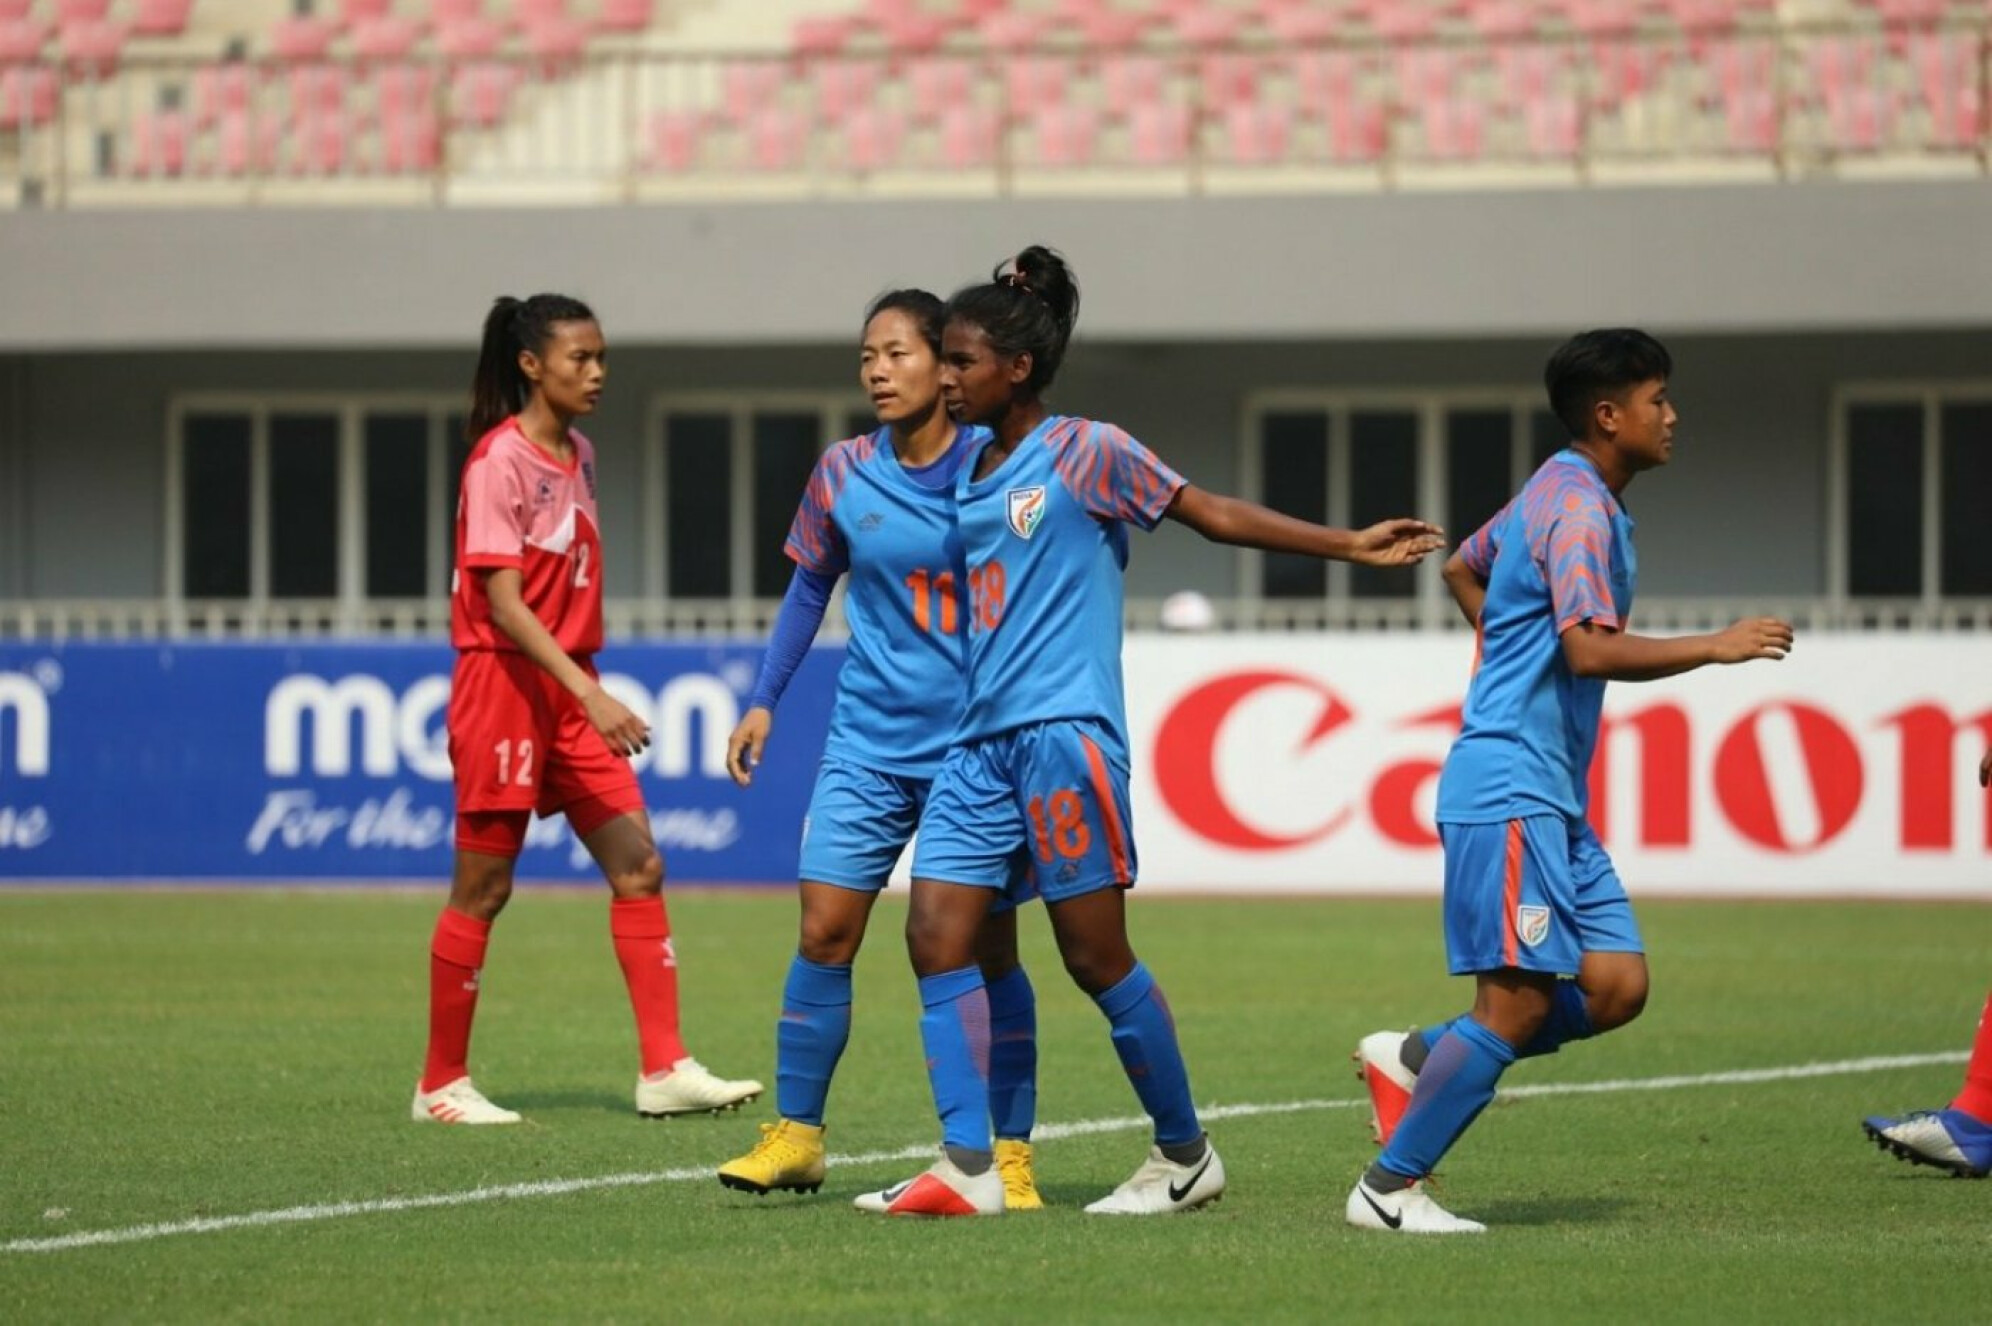 2020 Olympics Qualifiers: India defeat Nepal